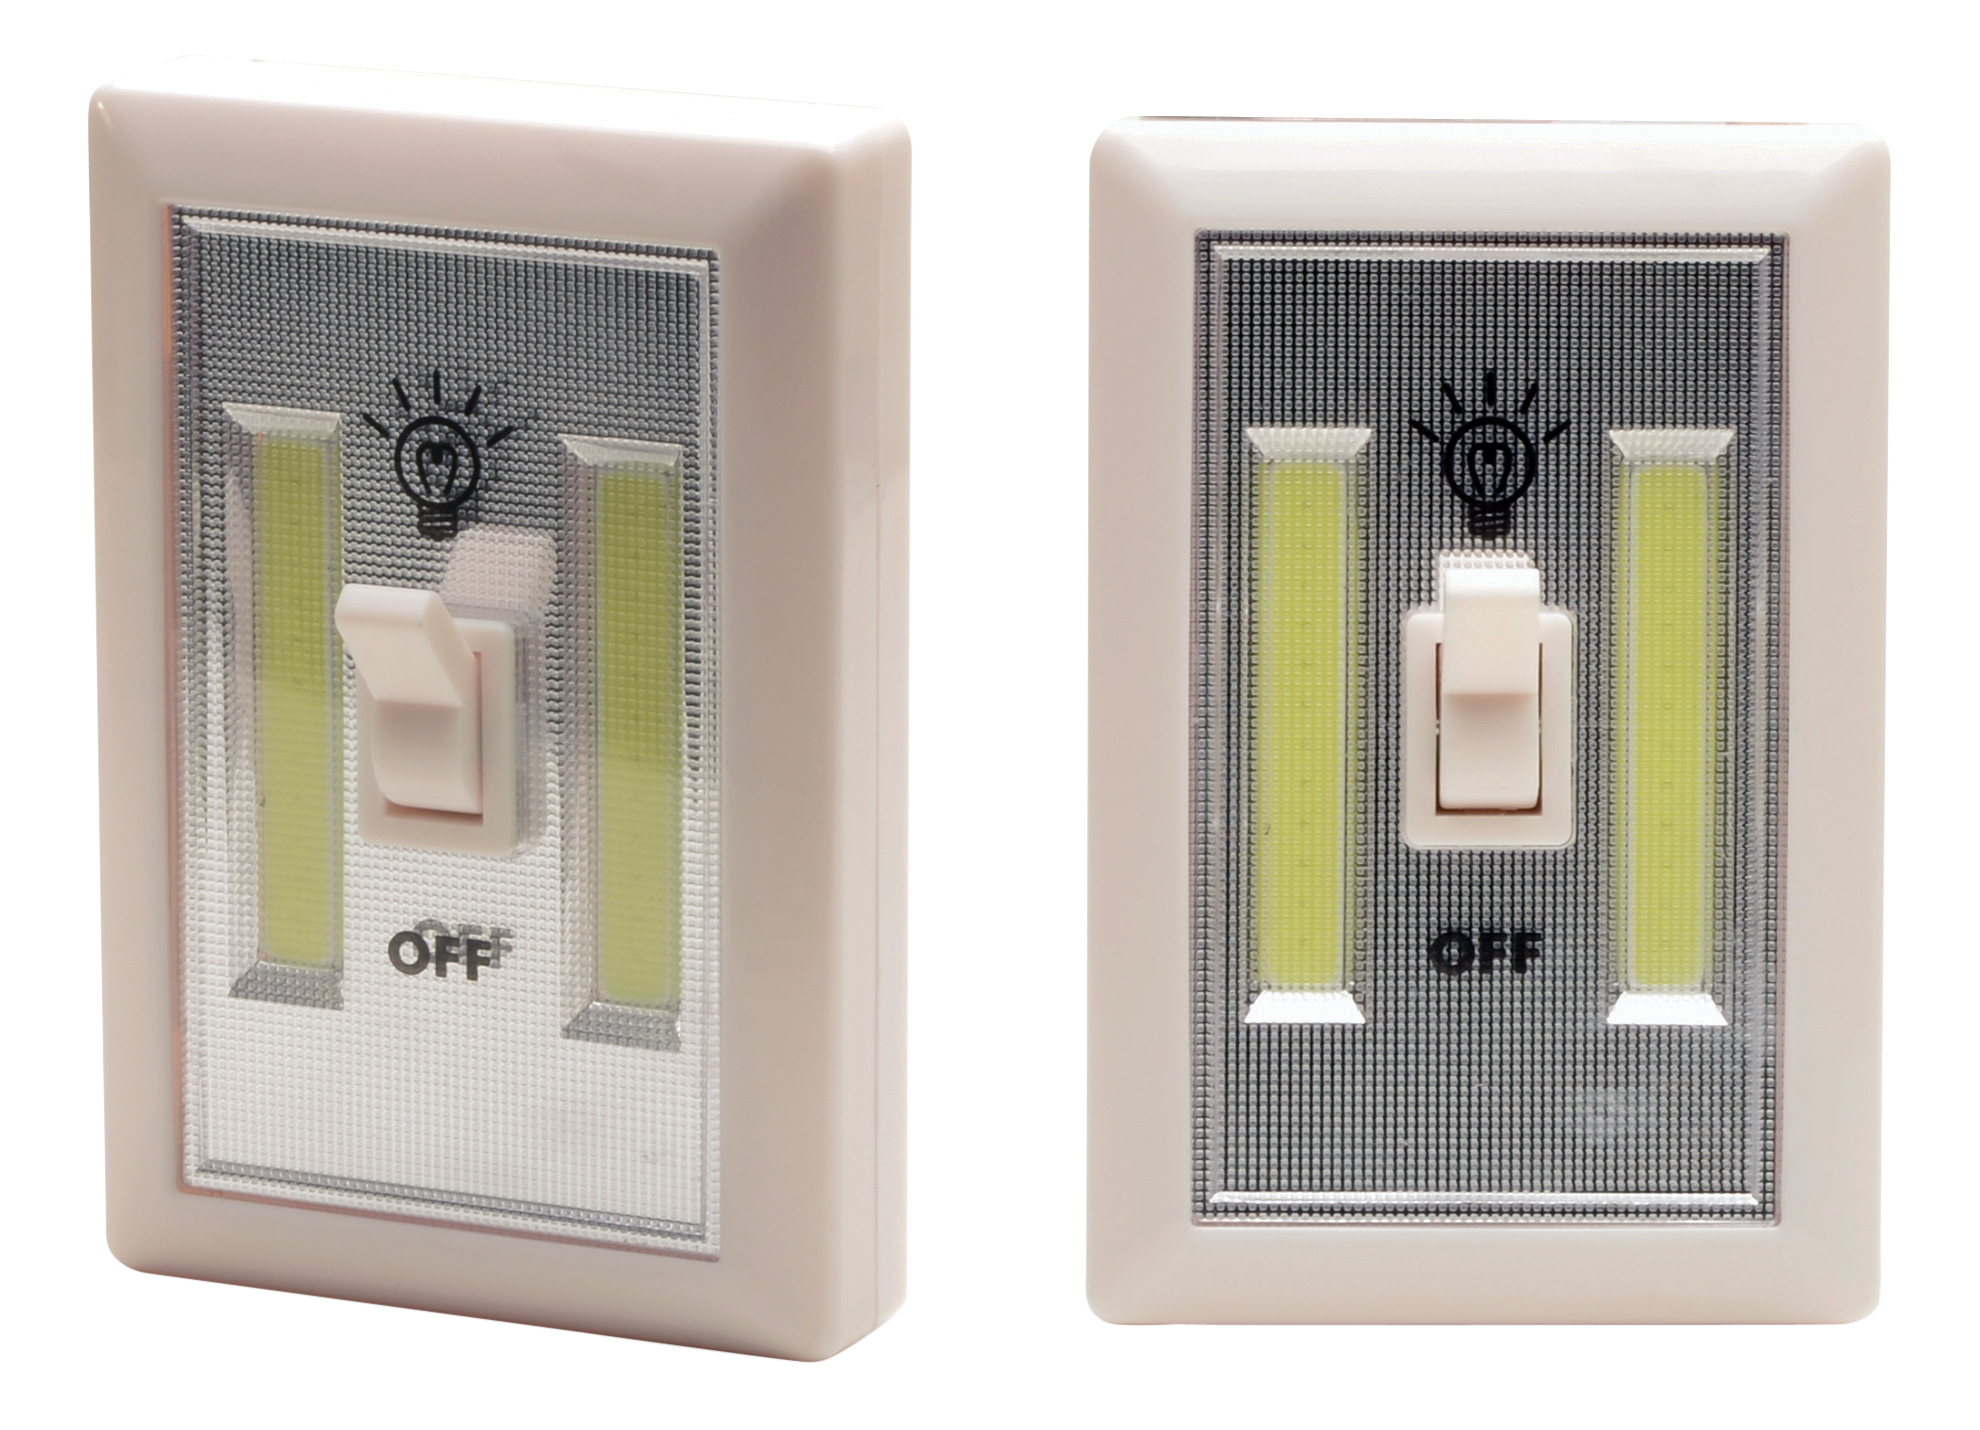 Cyclops CYCCOB2PK Light Switch 200 Lumens AAA (3) White 2Pk